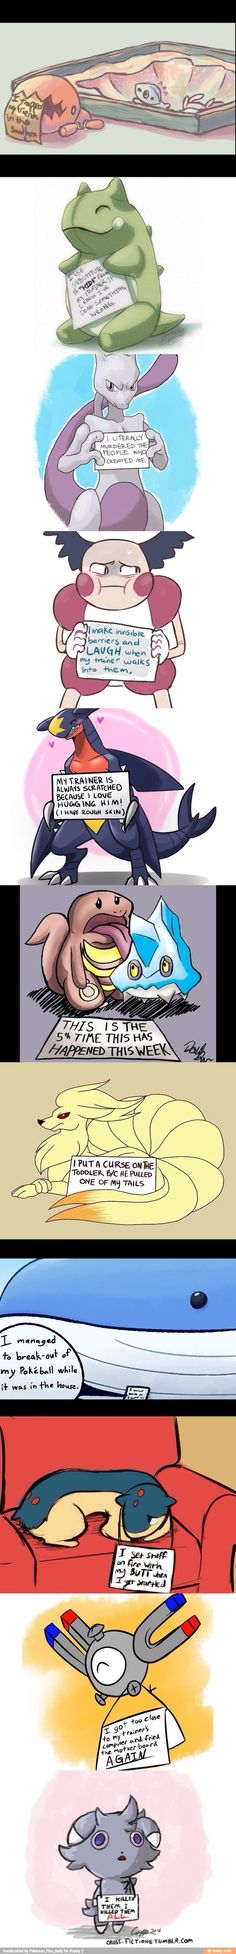 Pokemon shaming: